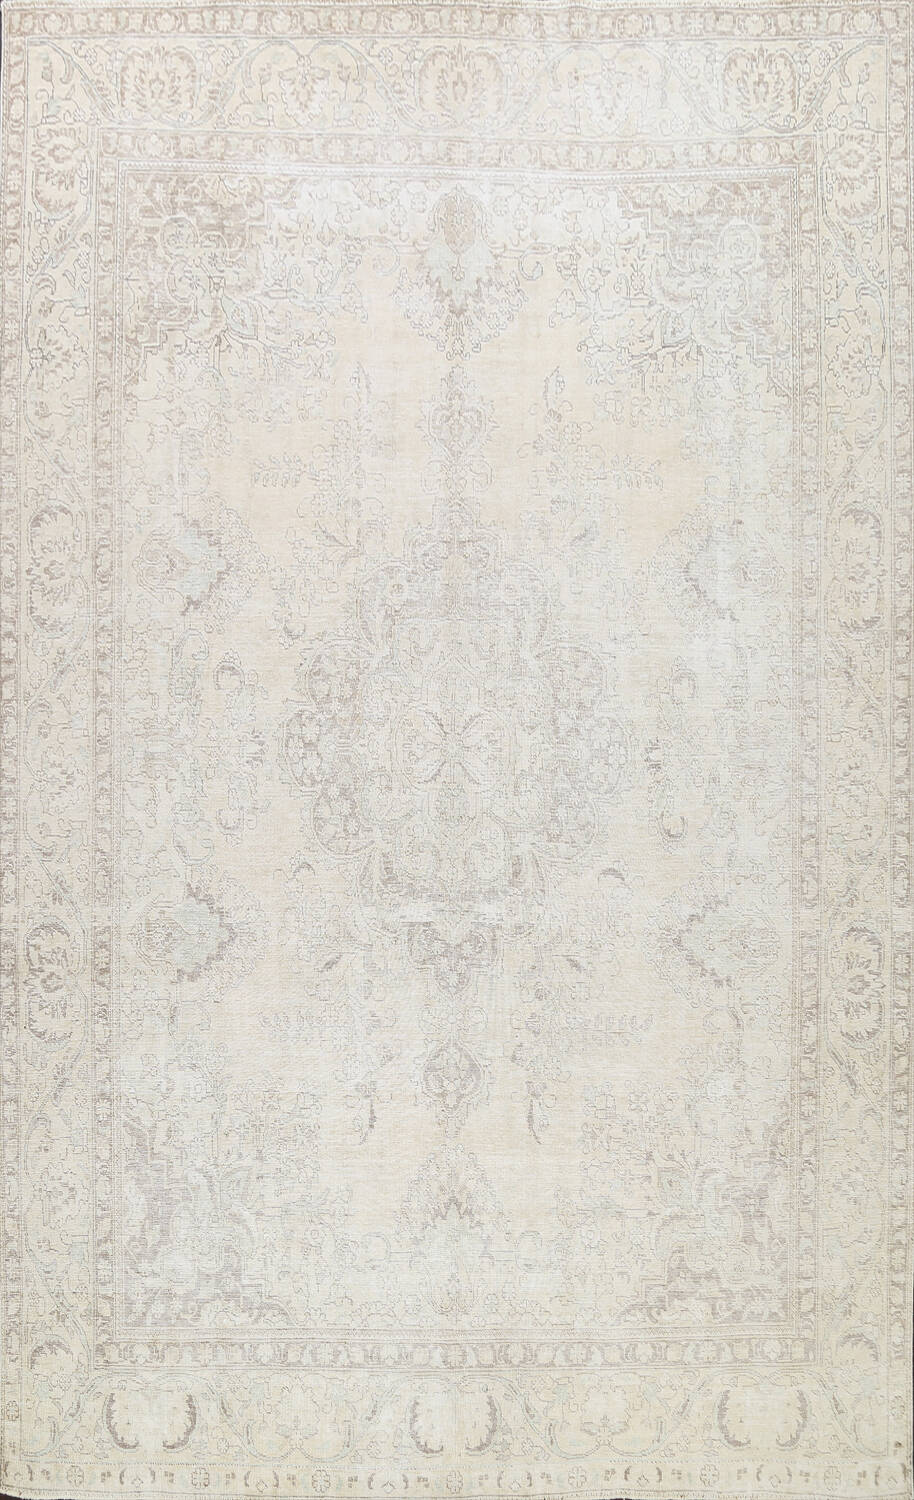 Muted Distressed Tabriz Persian Area Rug 10x12 image 1